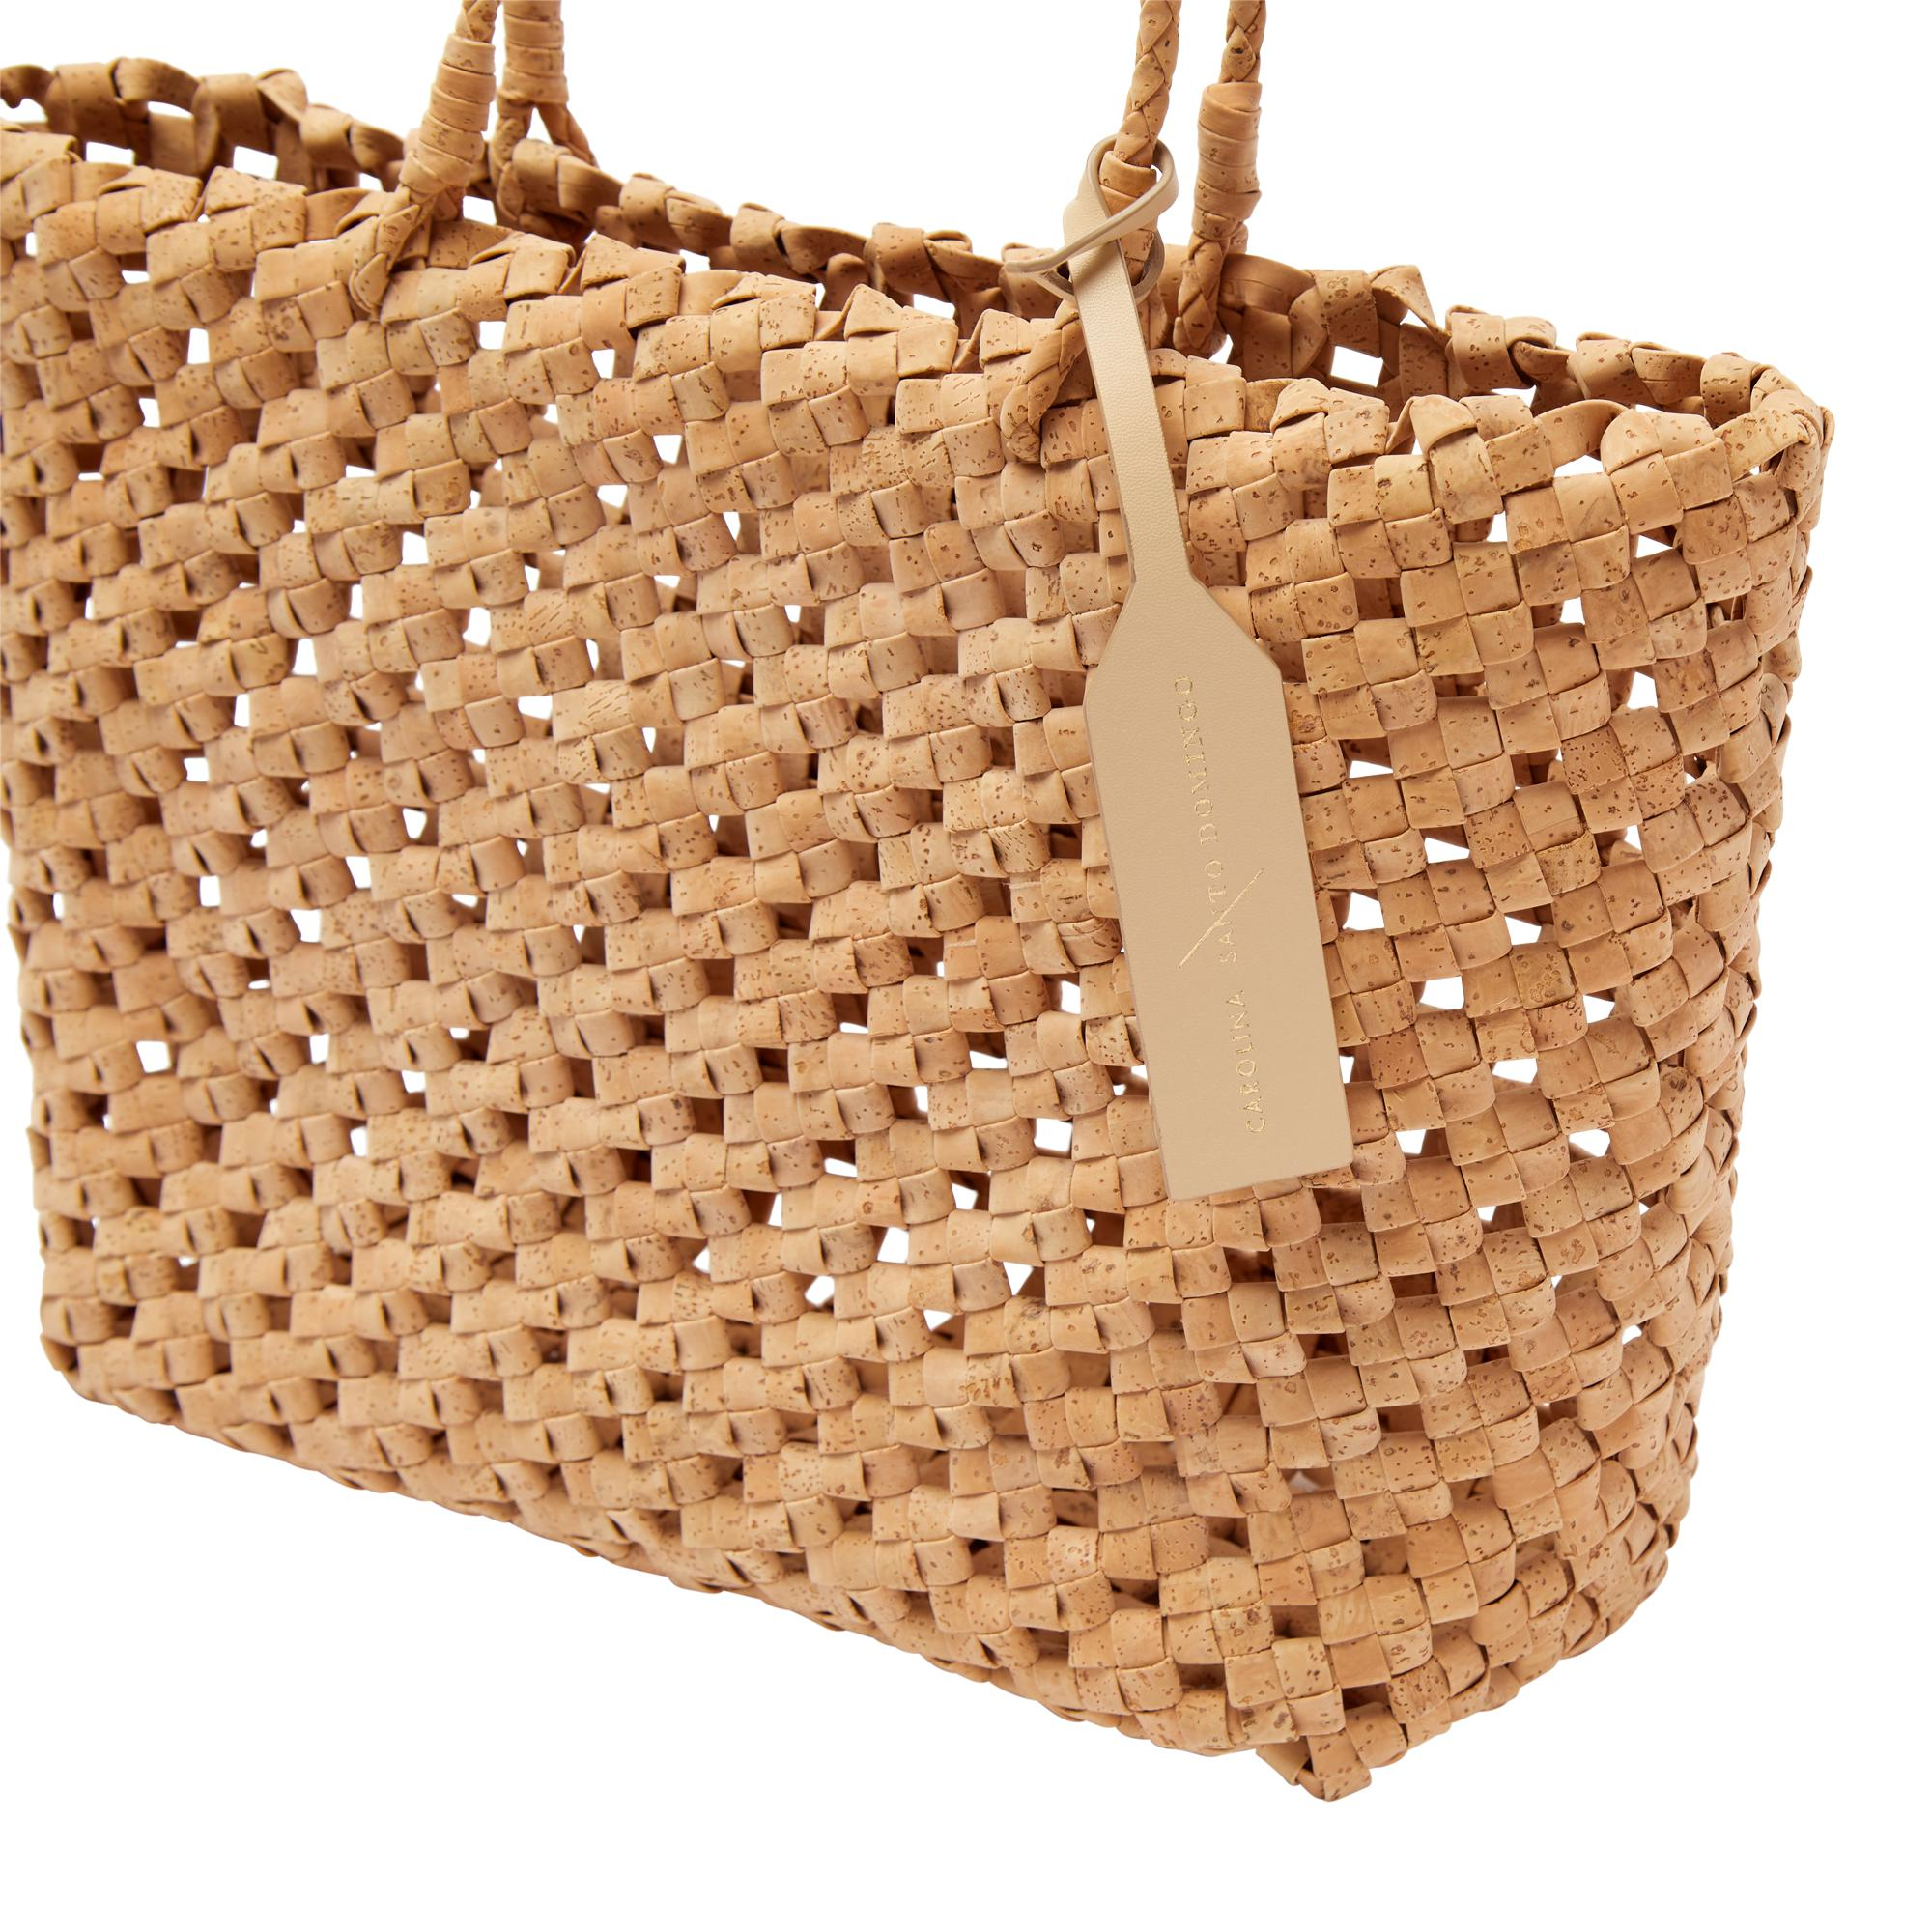 Vegan Cork Knotted Tote 3